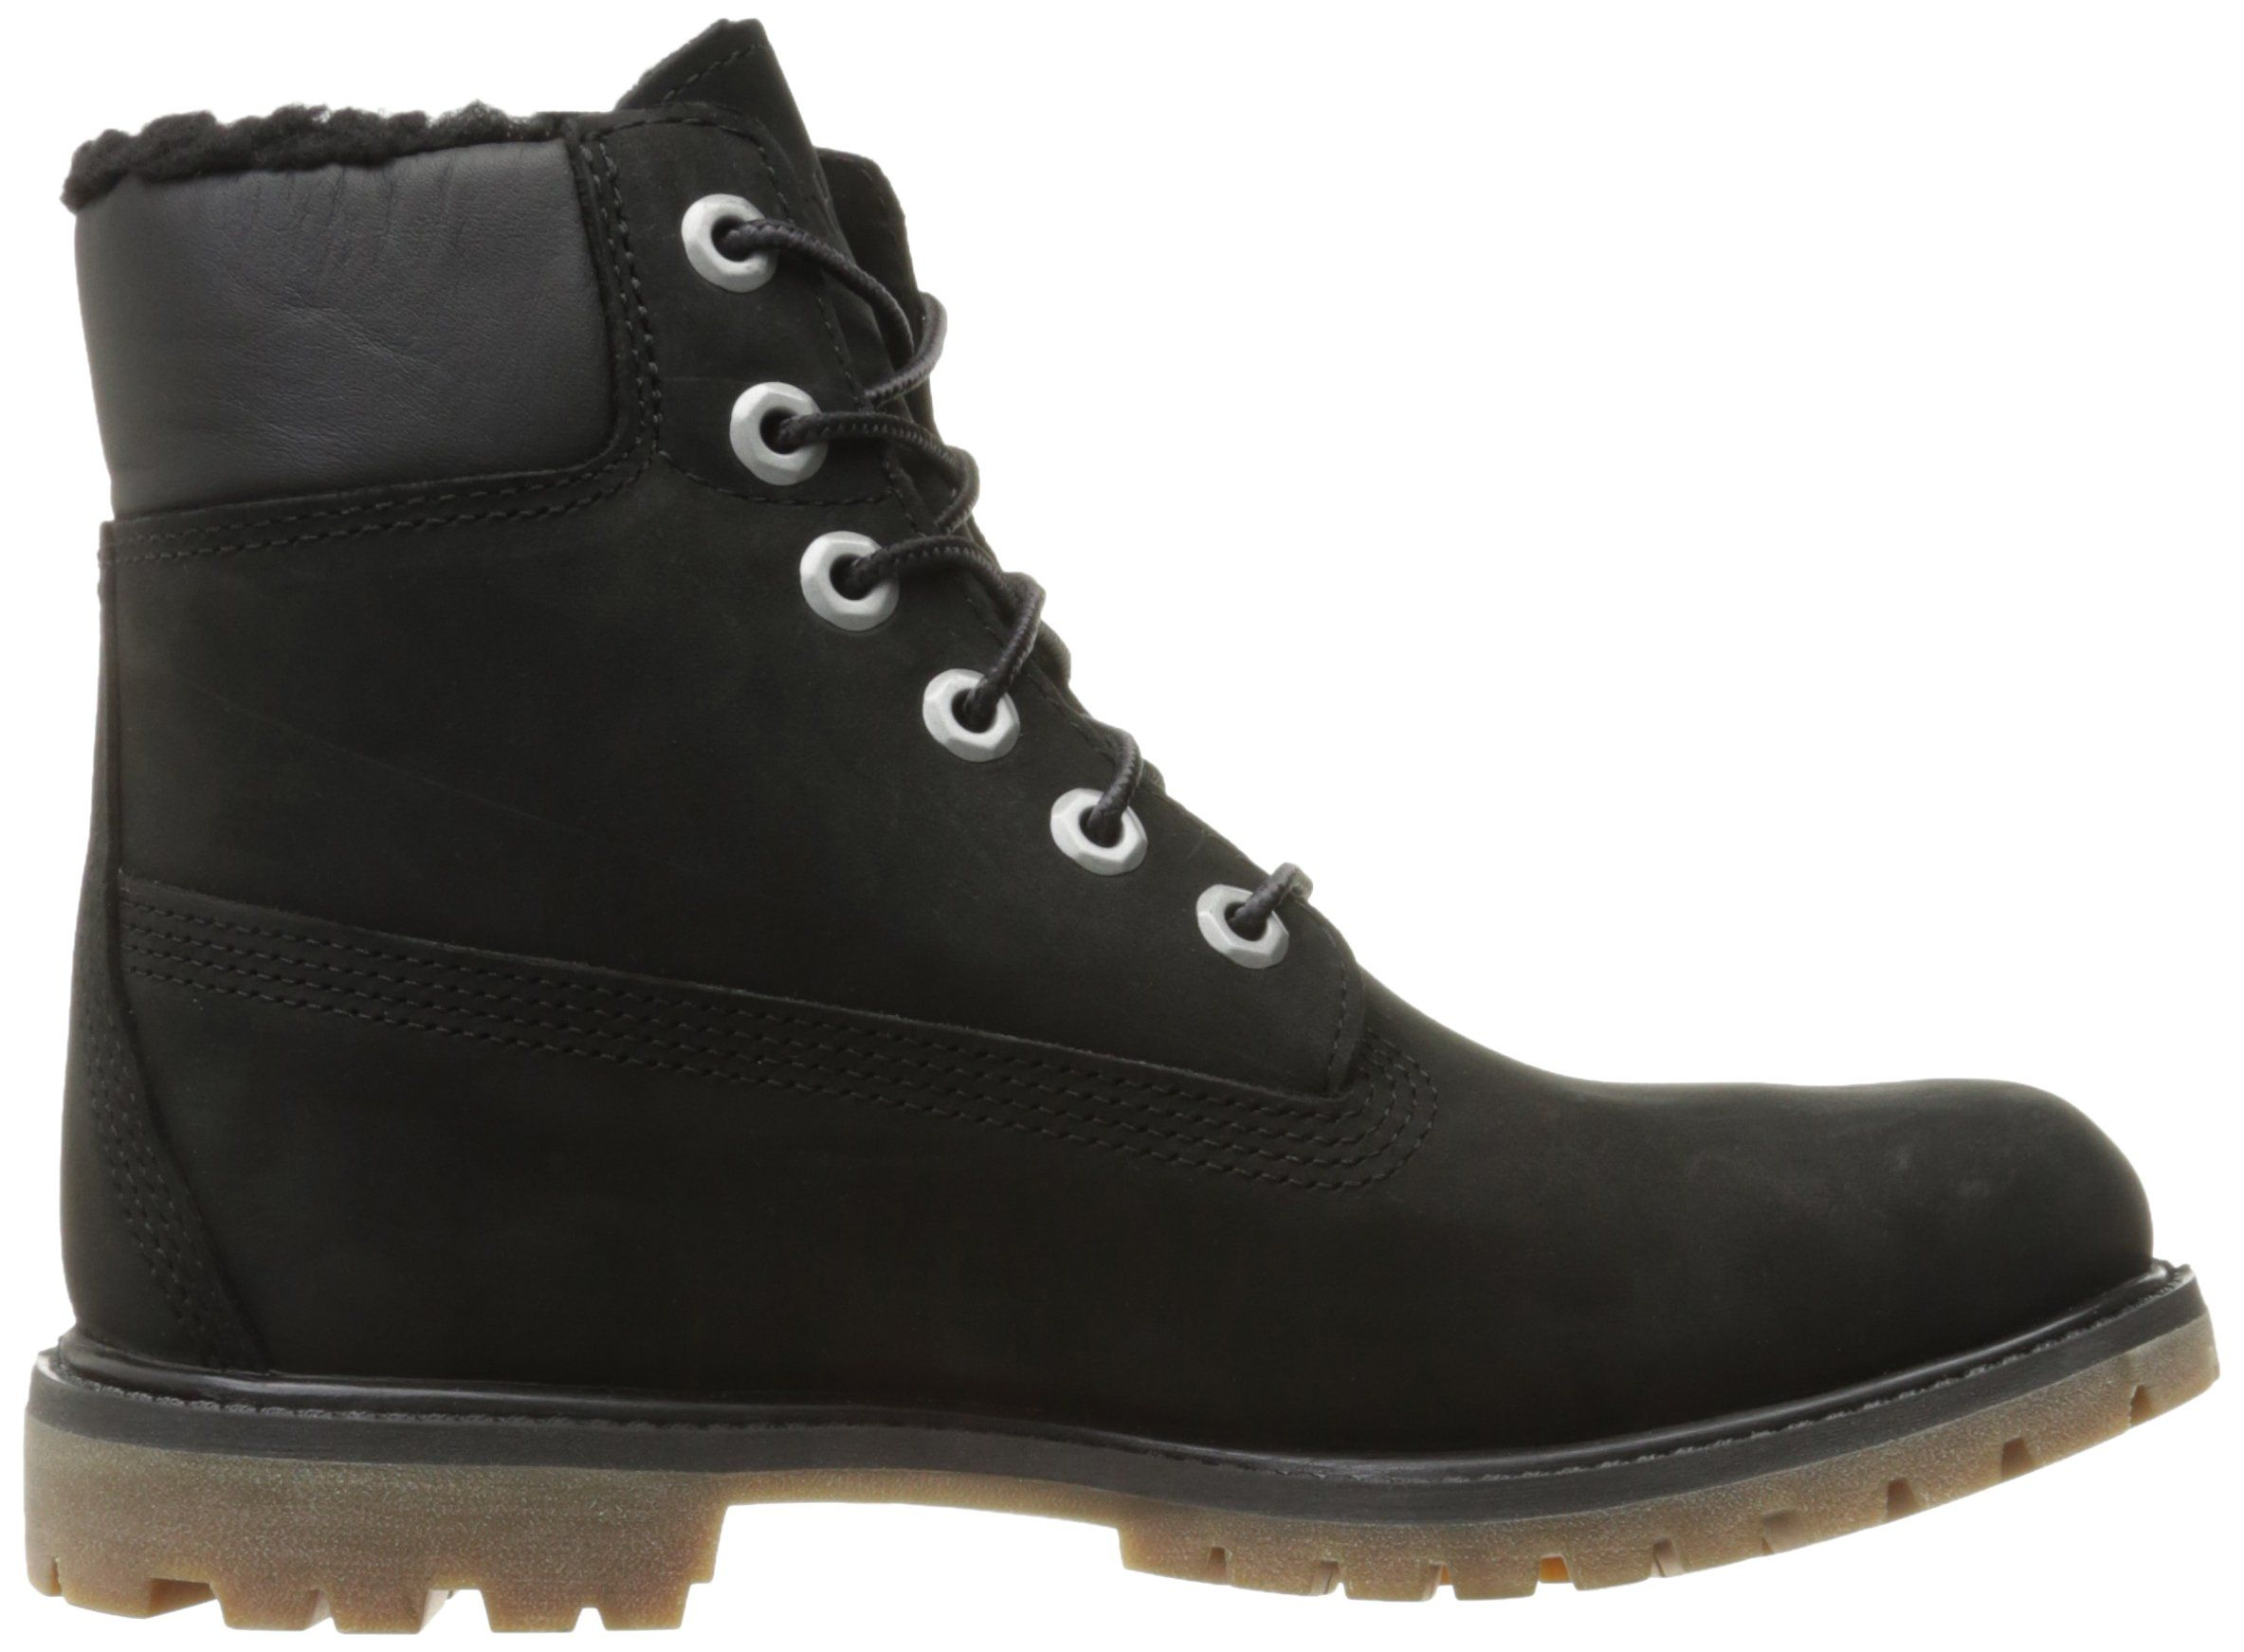 d407903bf274 Timberland Womens 6 Inch Premium Fleece Lined WP Winter Boot Black ...